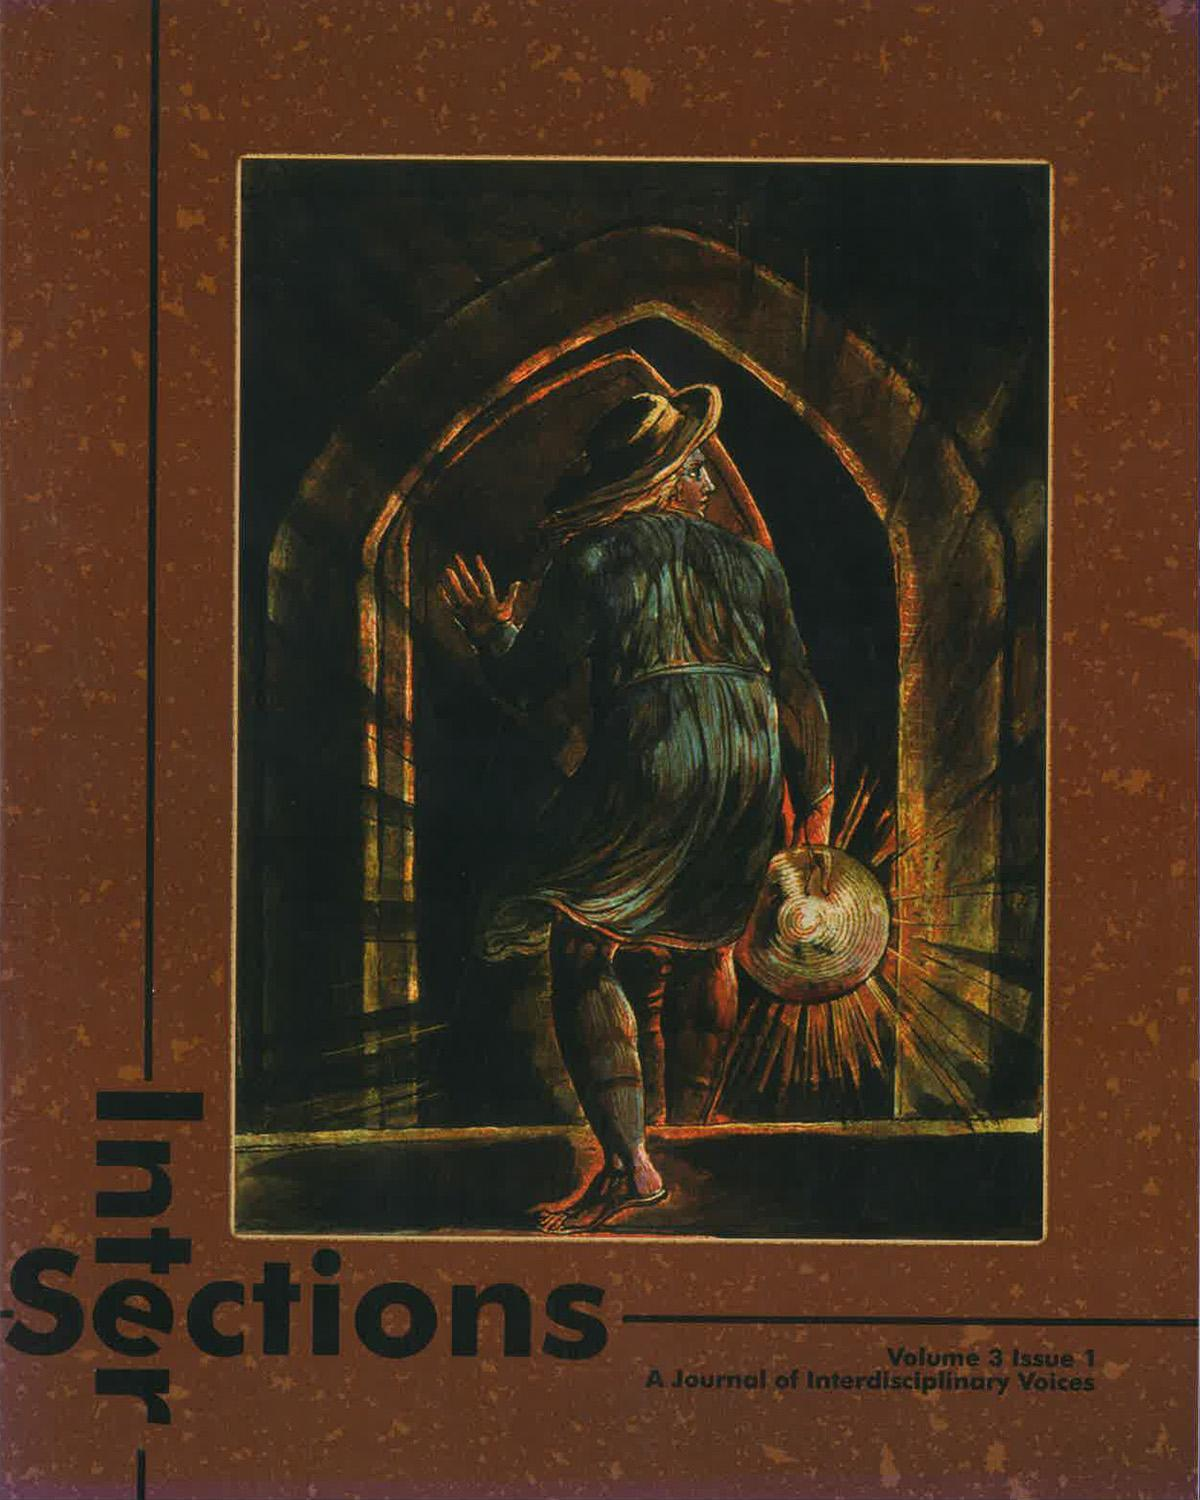 Intersections Volume 3 Issue 1